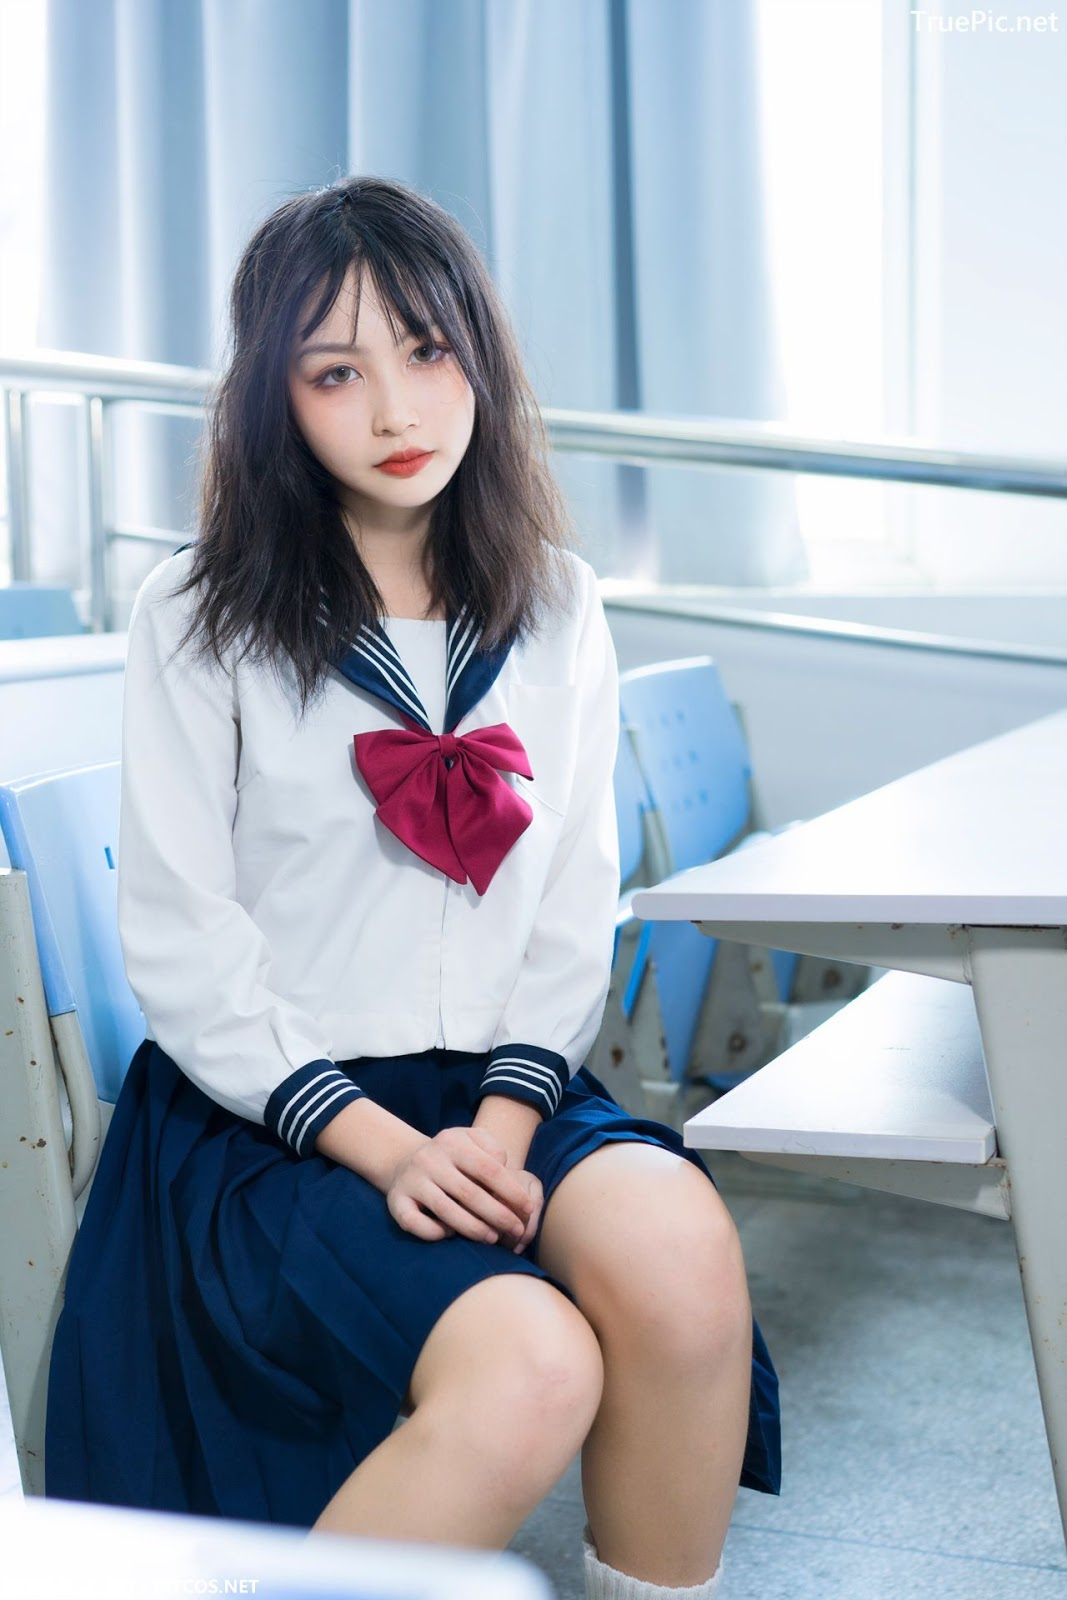 Image MTCos 喵糖映画 Vol.014 – Chinese Cute Model With Japanese School Uniform - TruePic.net- Picture-9